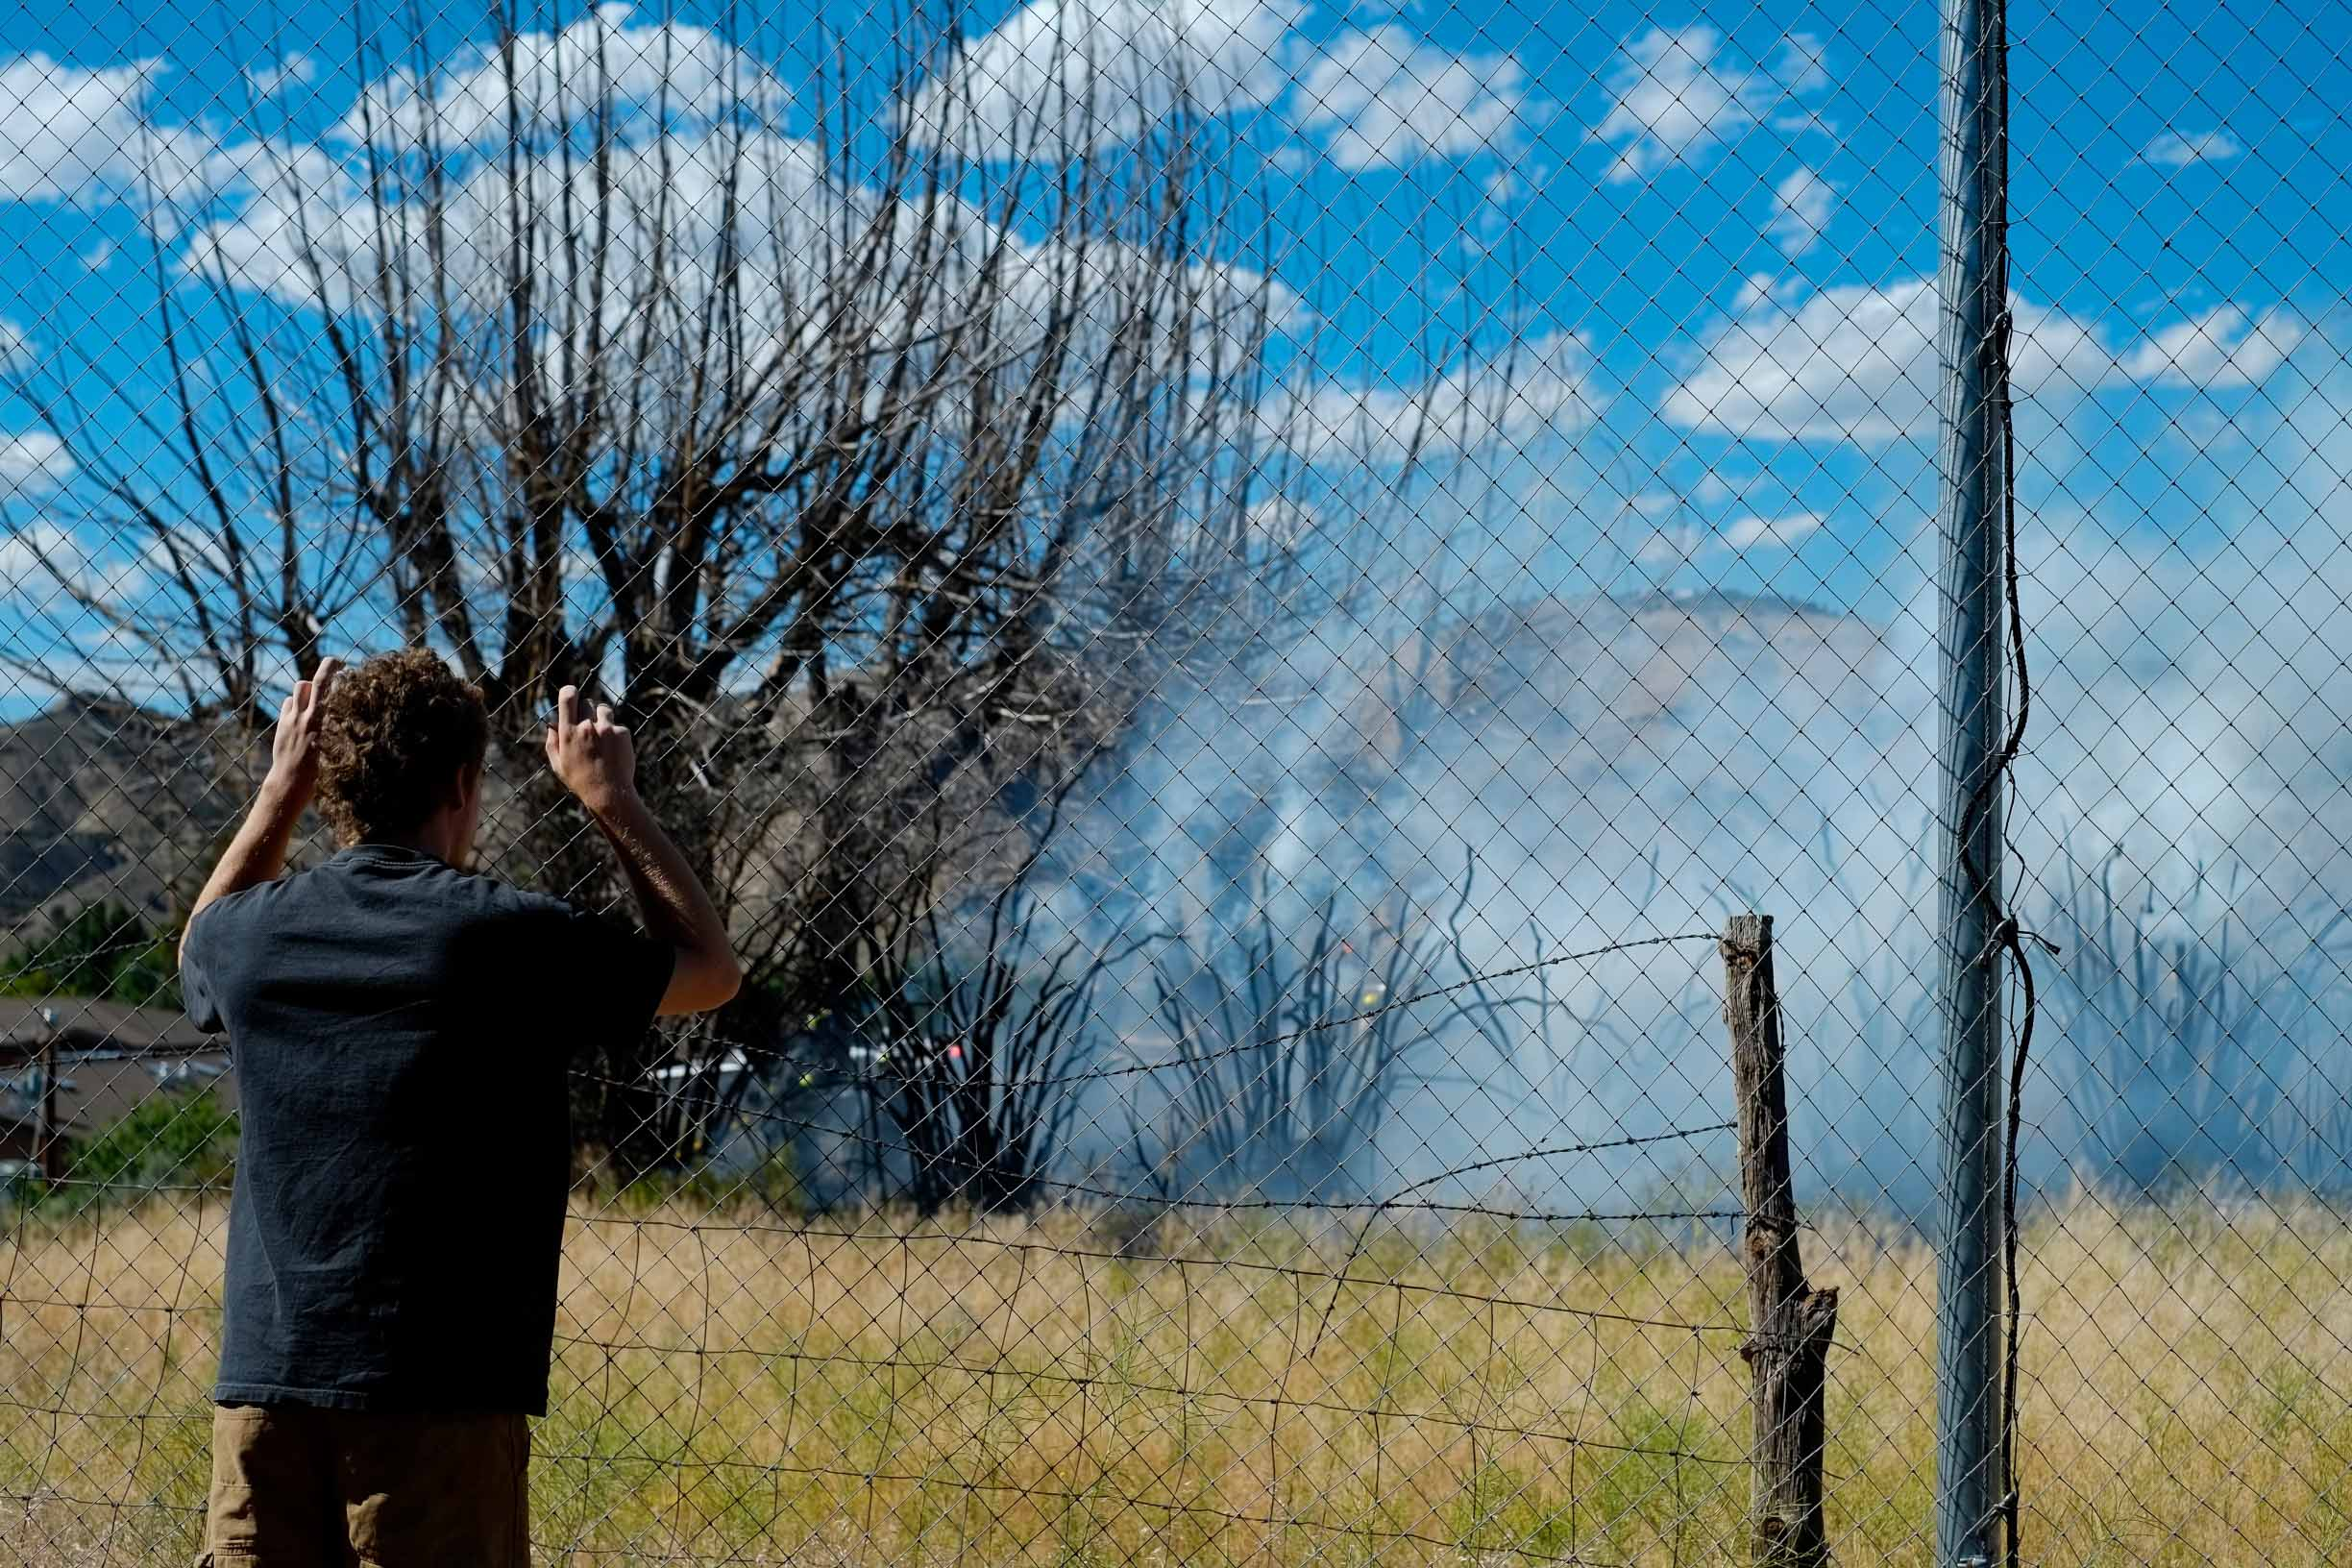 A bystander watches as smoke billows from charred trees after a fire in Gypsum, Colo. on Sunday June 29, 2014. The fire was at a risk of spreading due to high winds and the county's current drought.